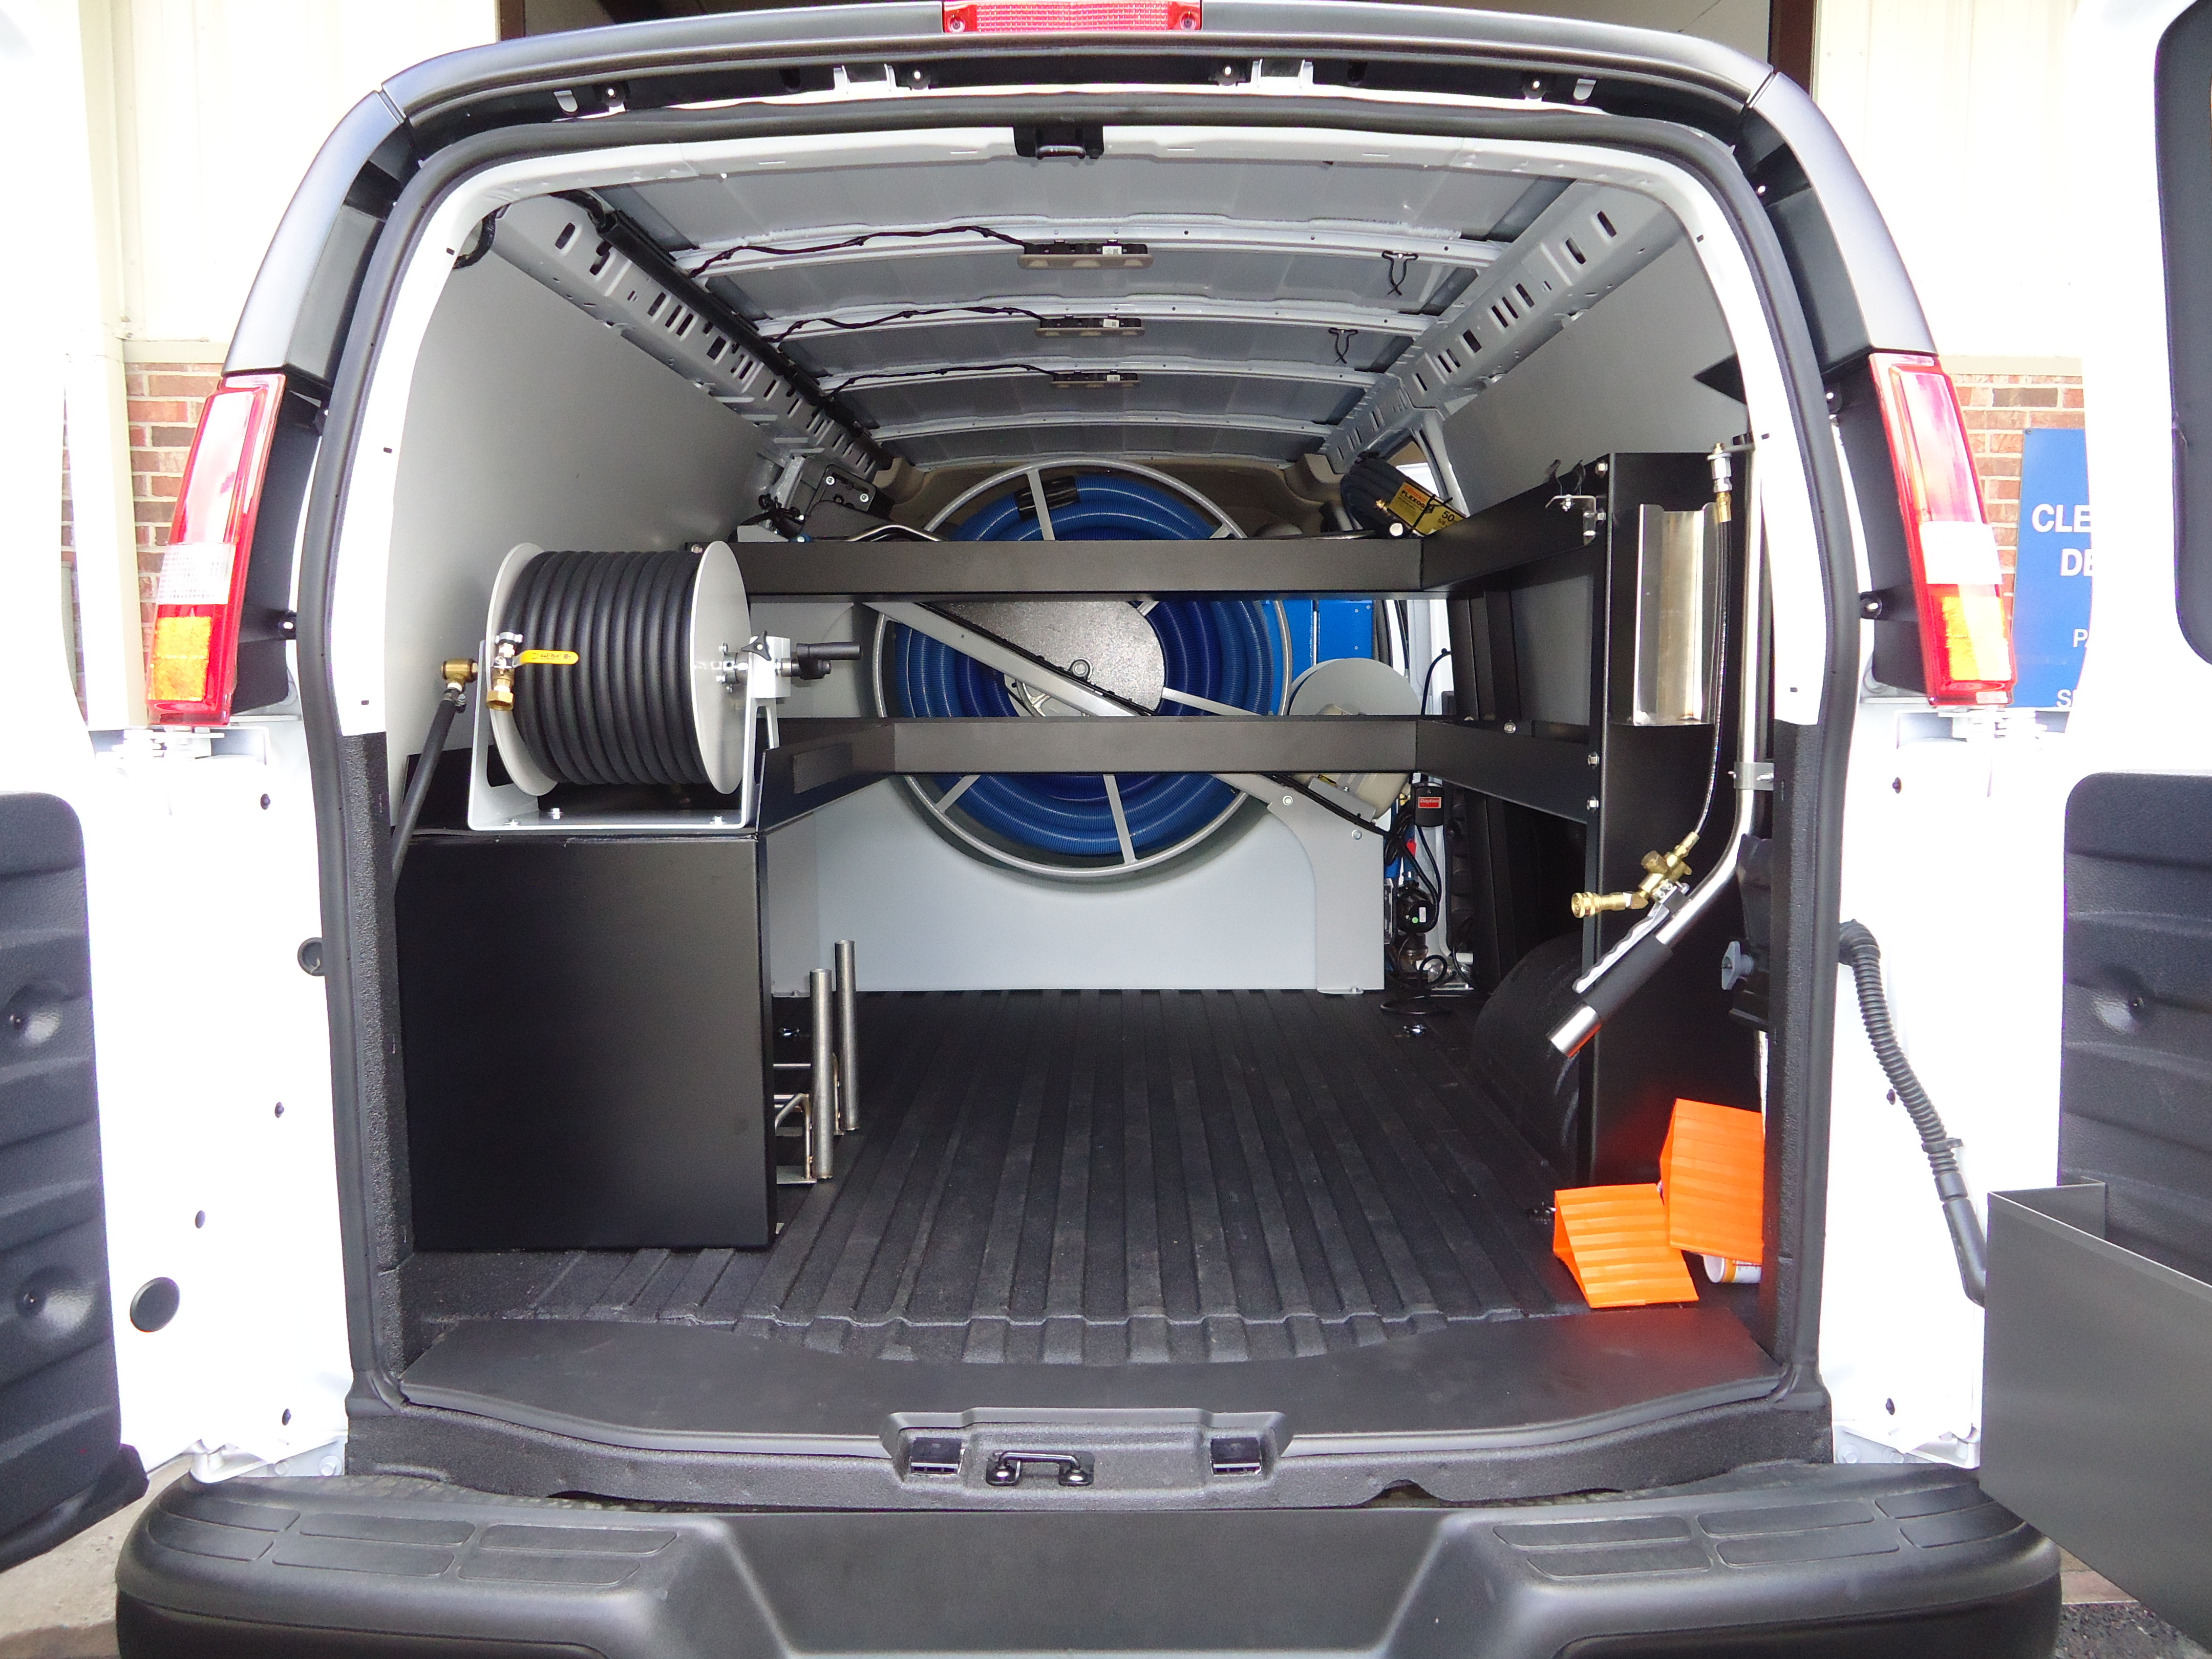 Hydramaster CDS 4.8 - Pro Shelving Kit - Fits Extended Chevy Vans Only PTI-CDS